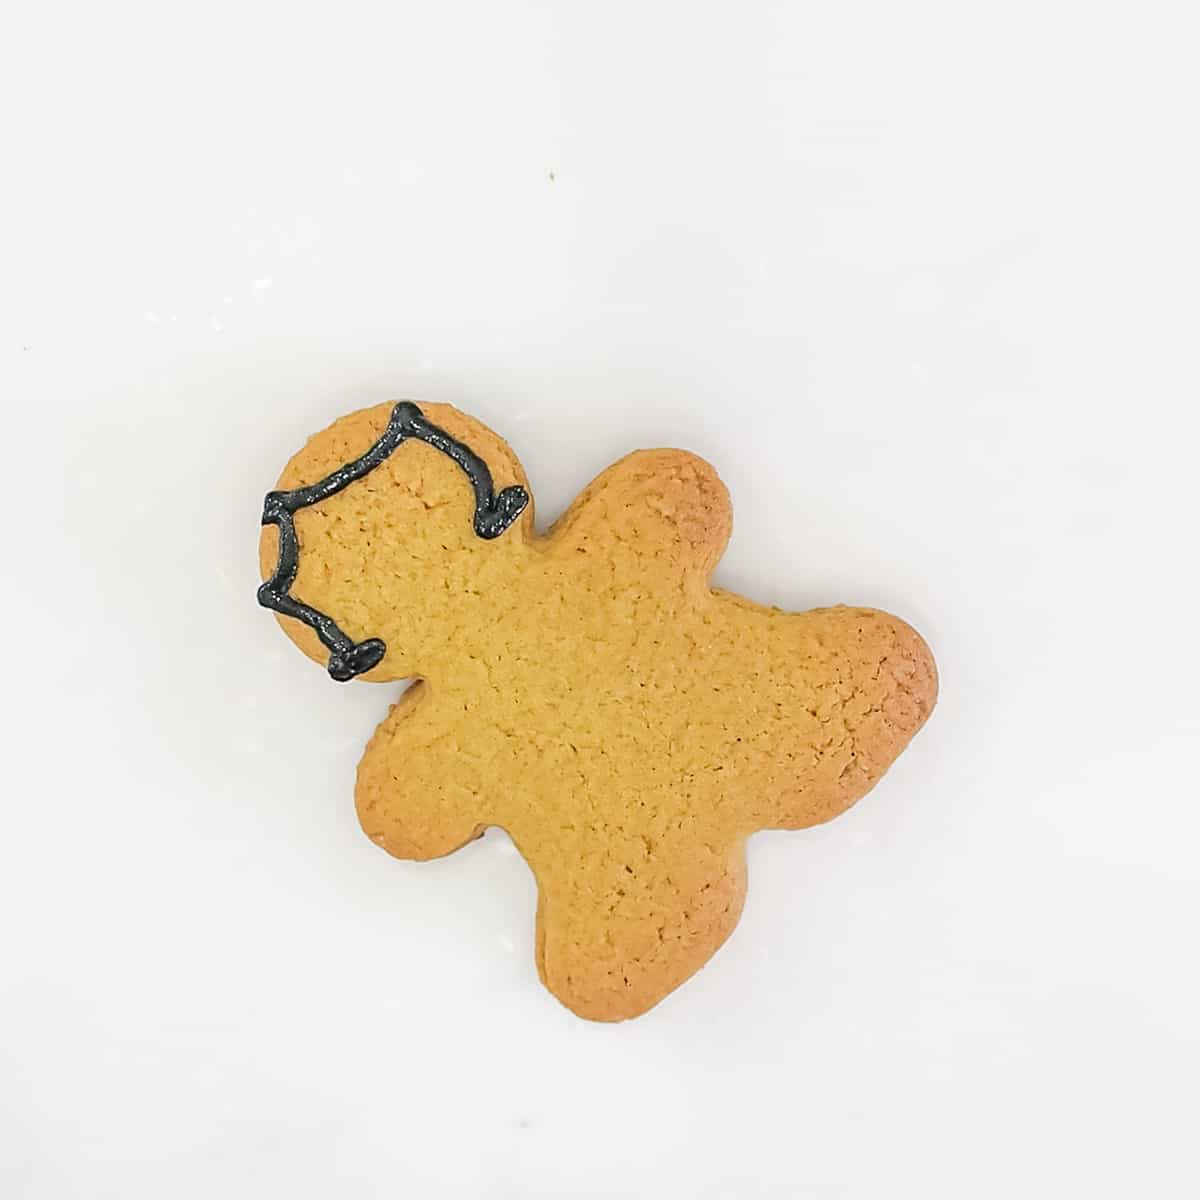 A gingerbread cookies with black icing outline for the hair.